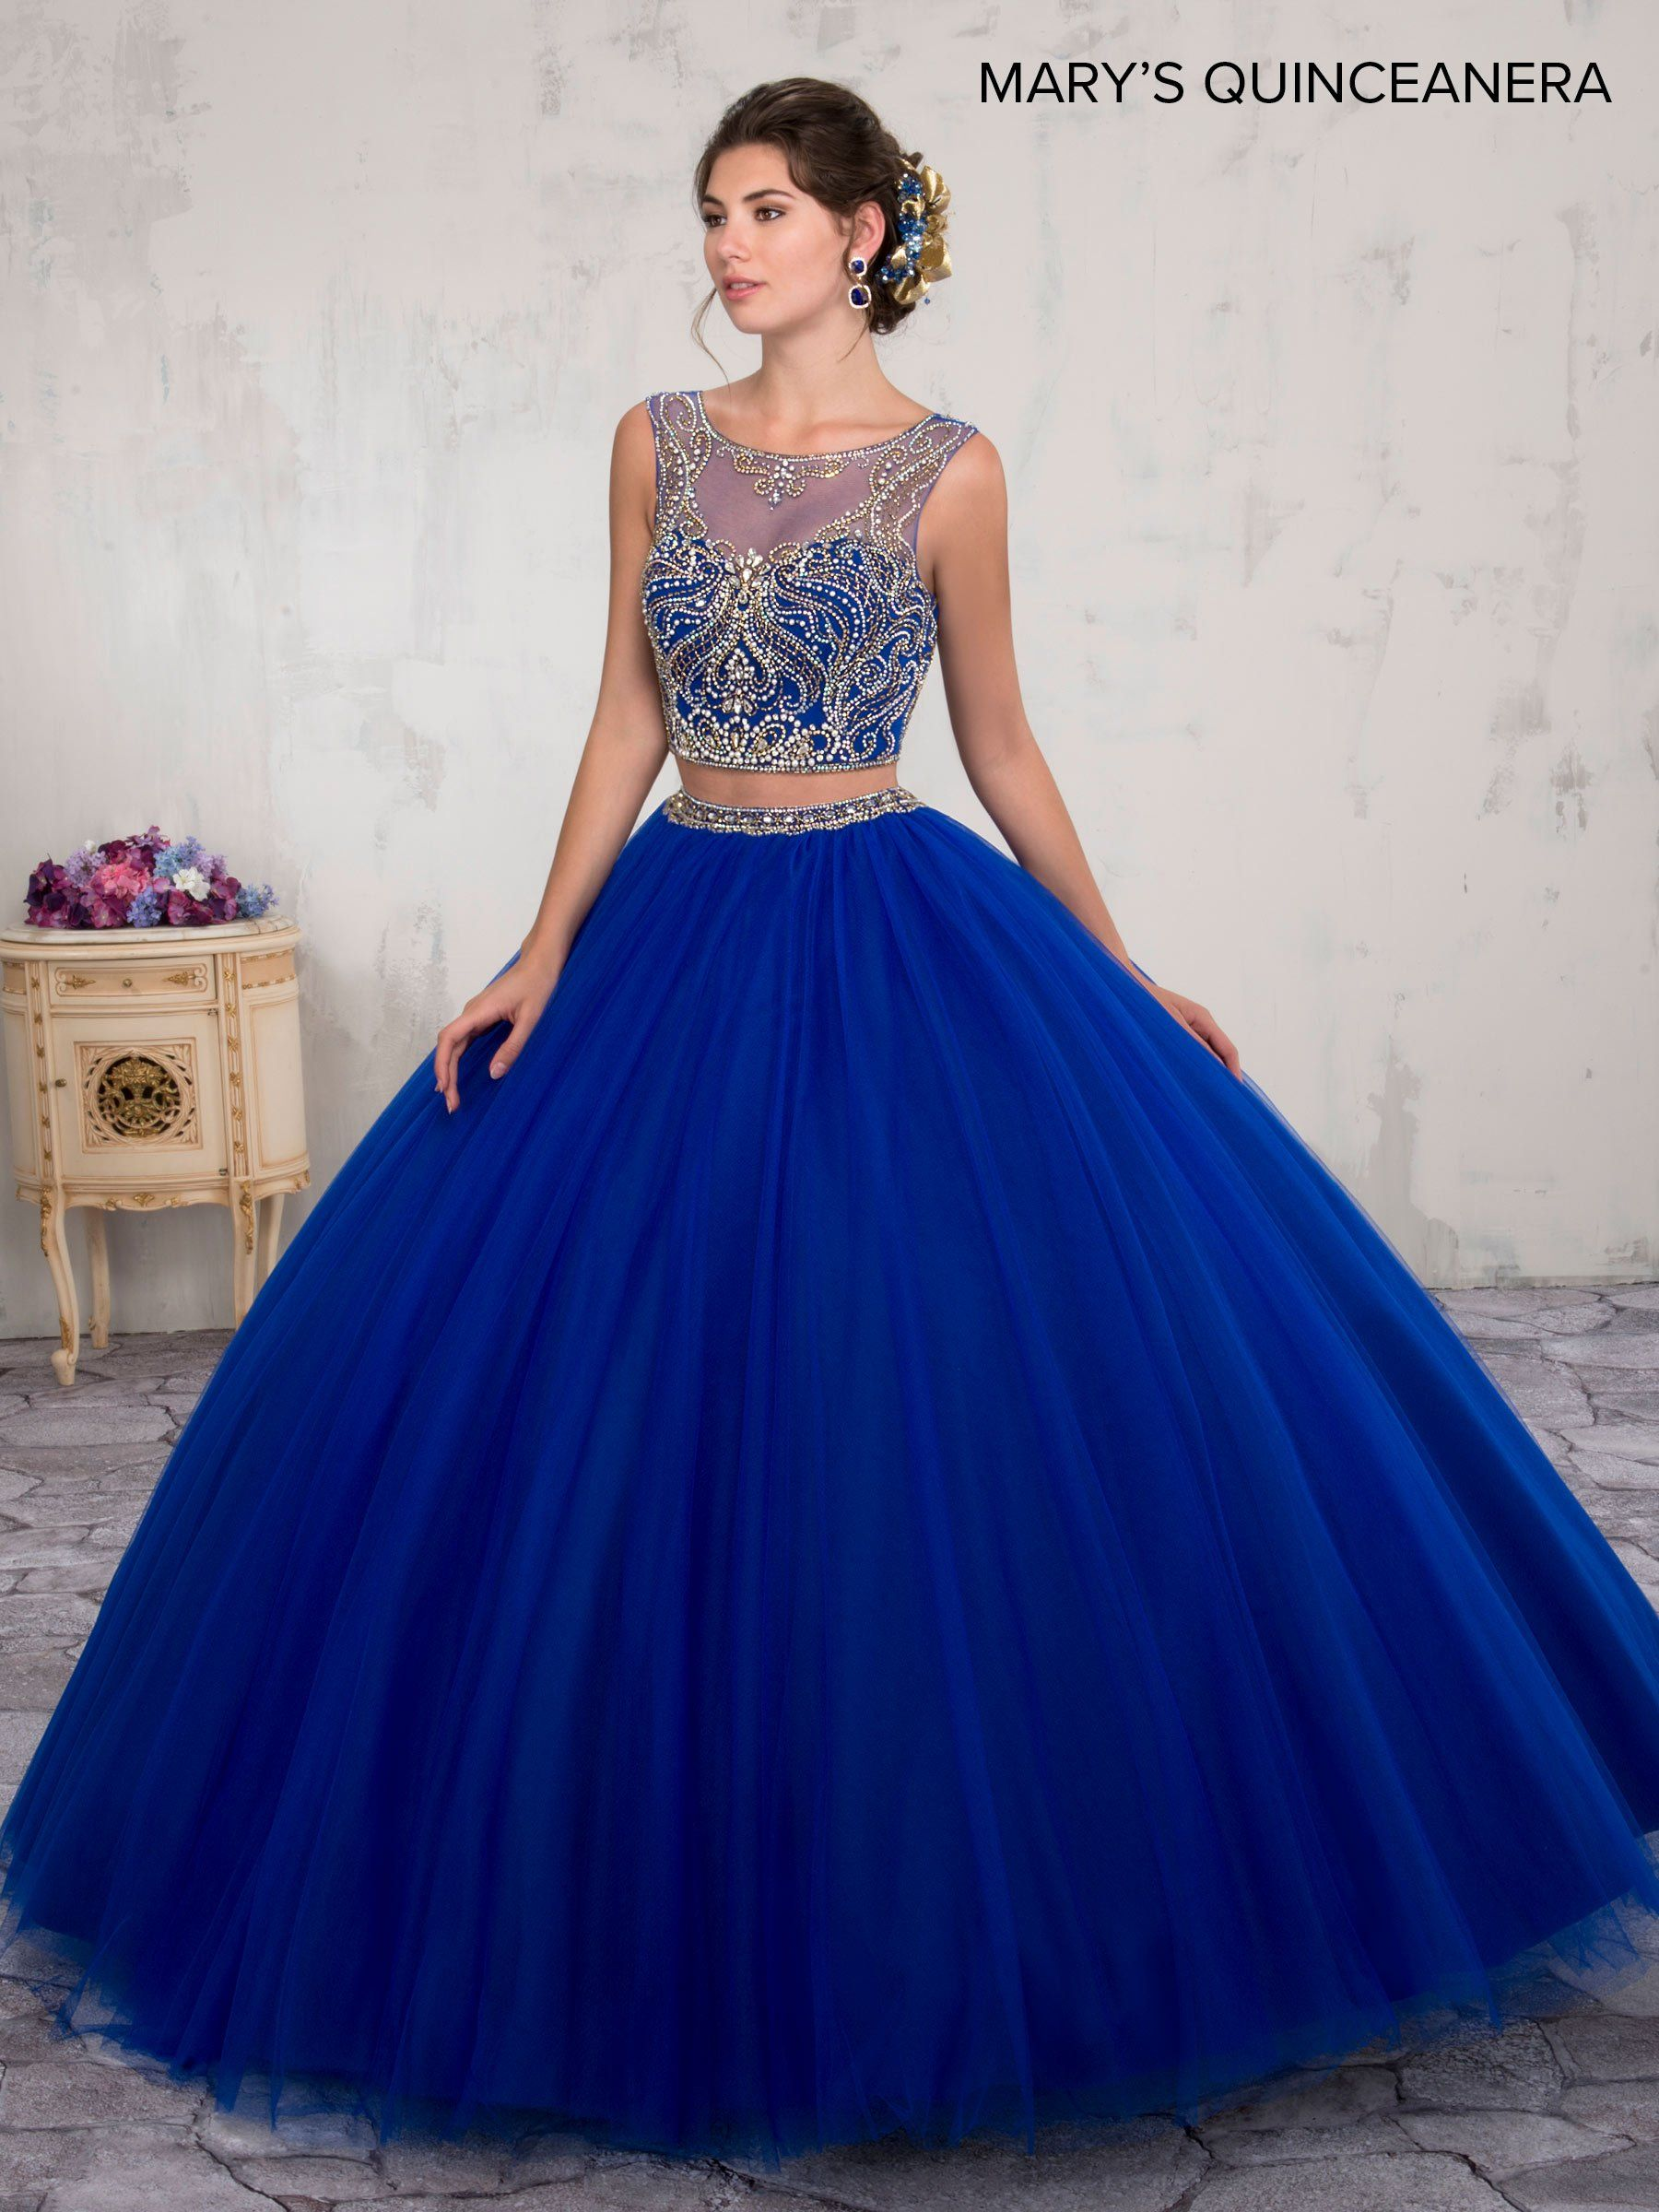 67fe75f183 Two-Piece Crop Top Quinceanera Dress by Mary s Bridal M4Q2005 in ...